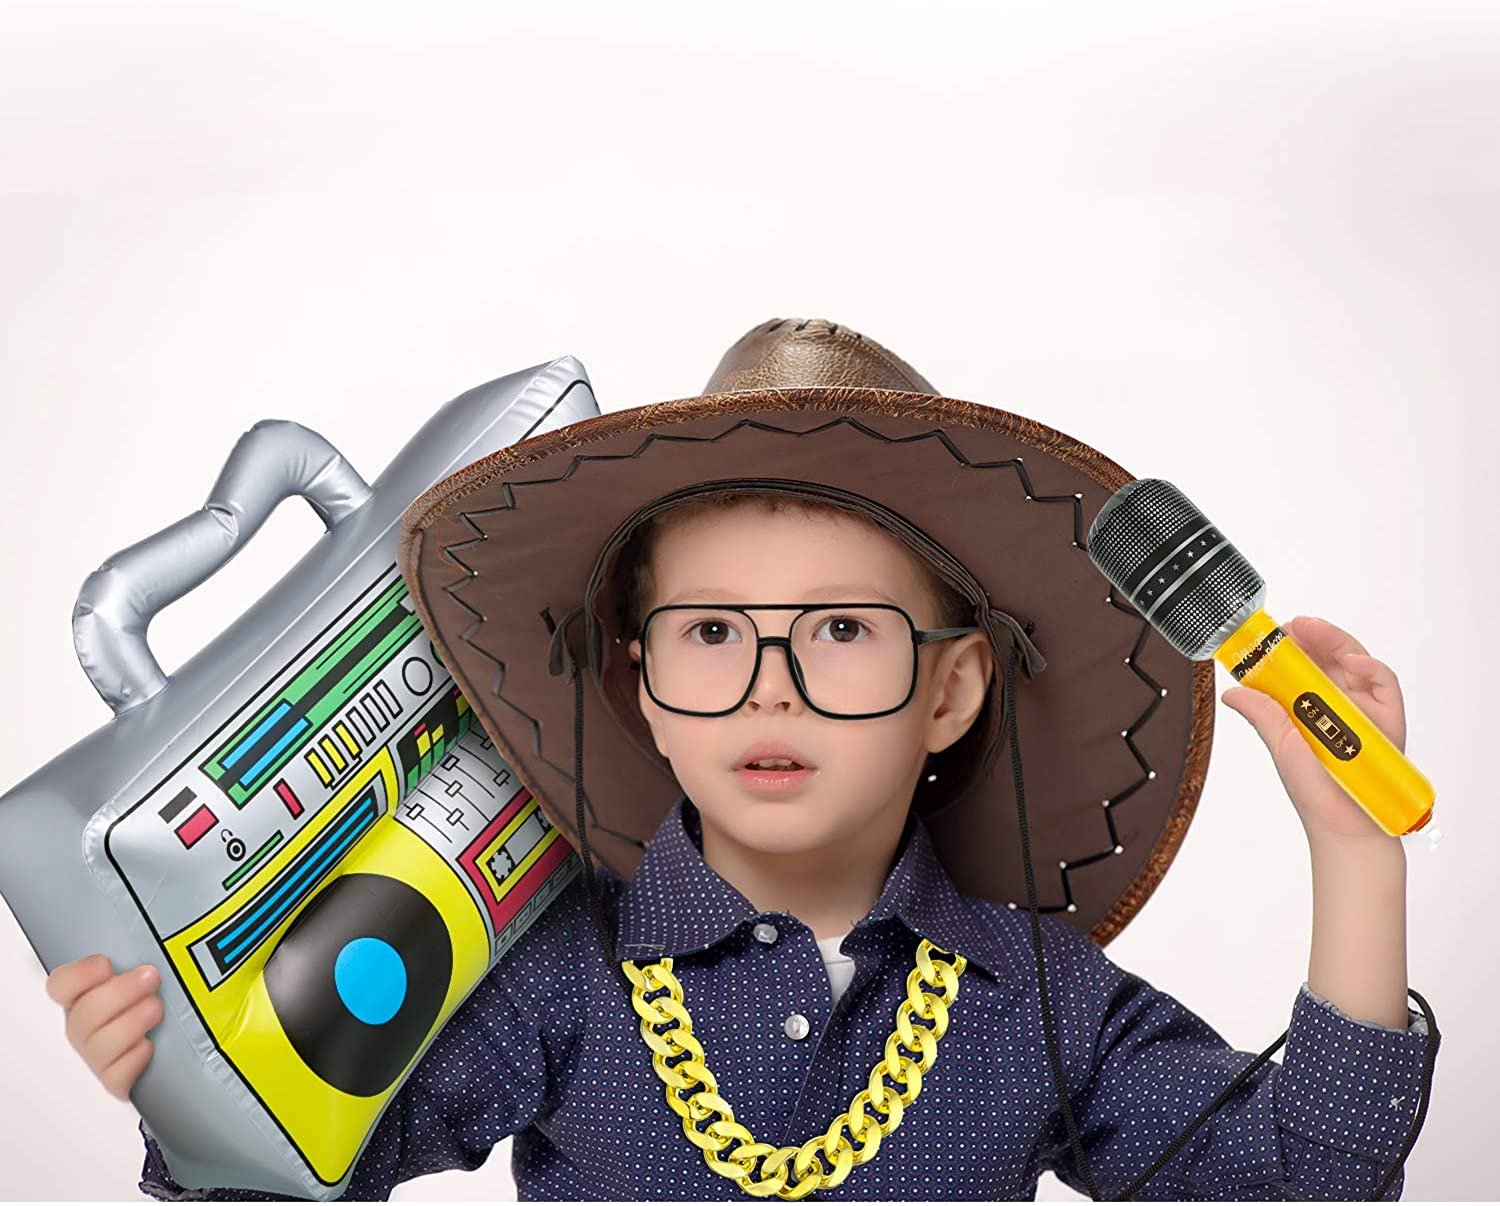 80s// 90s Hip Hop Costumes Accessories Bucket Hat DJ Sunglasses Faux Gold Chain Inflatable Boom Box Microphones